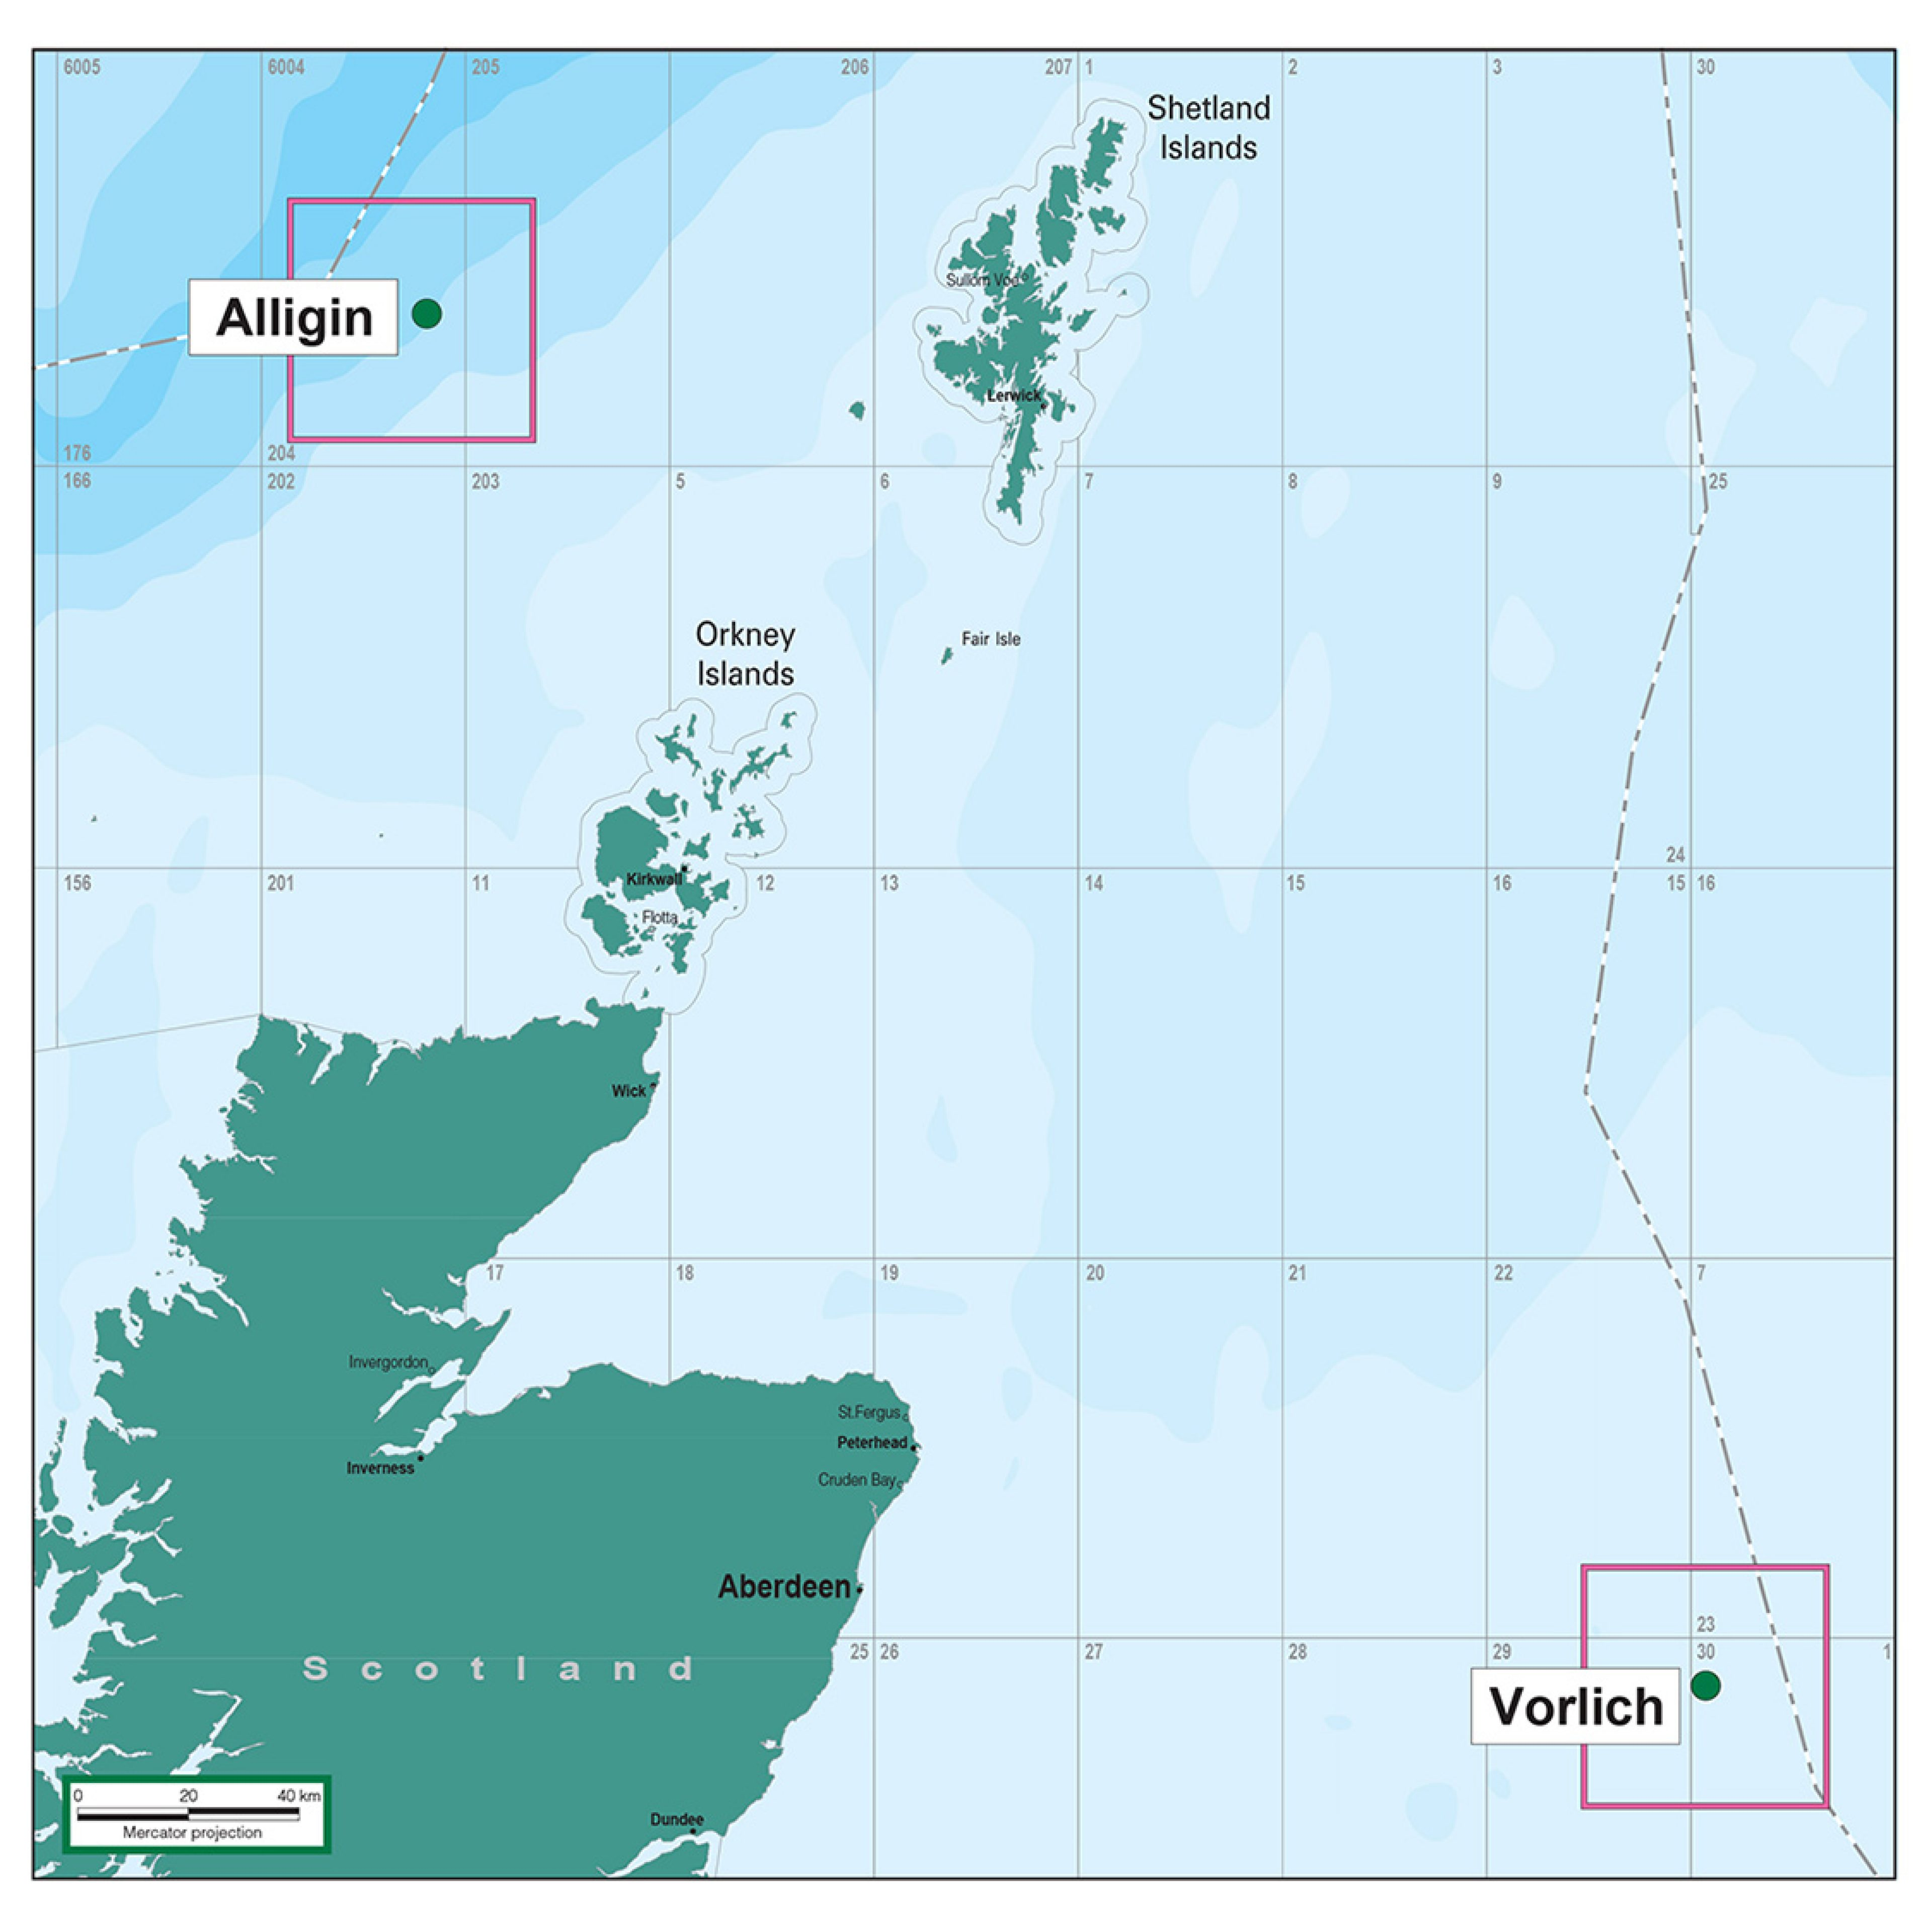 Map of the Alligin and Vorlich fields in the North Sea